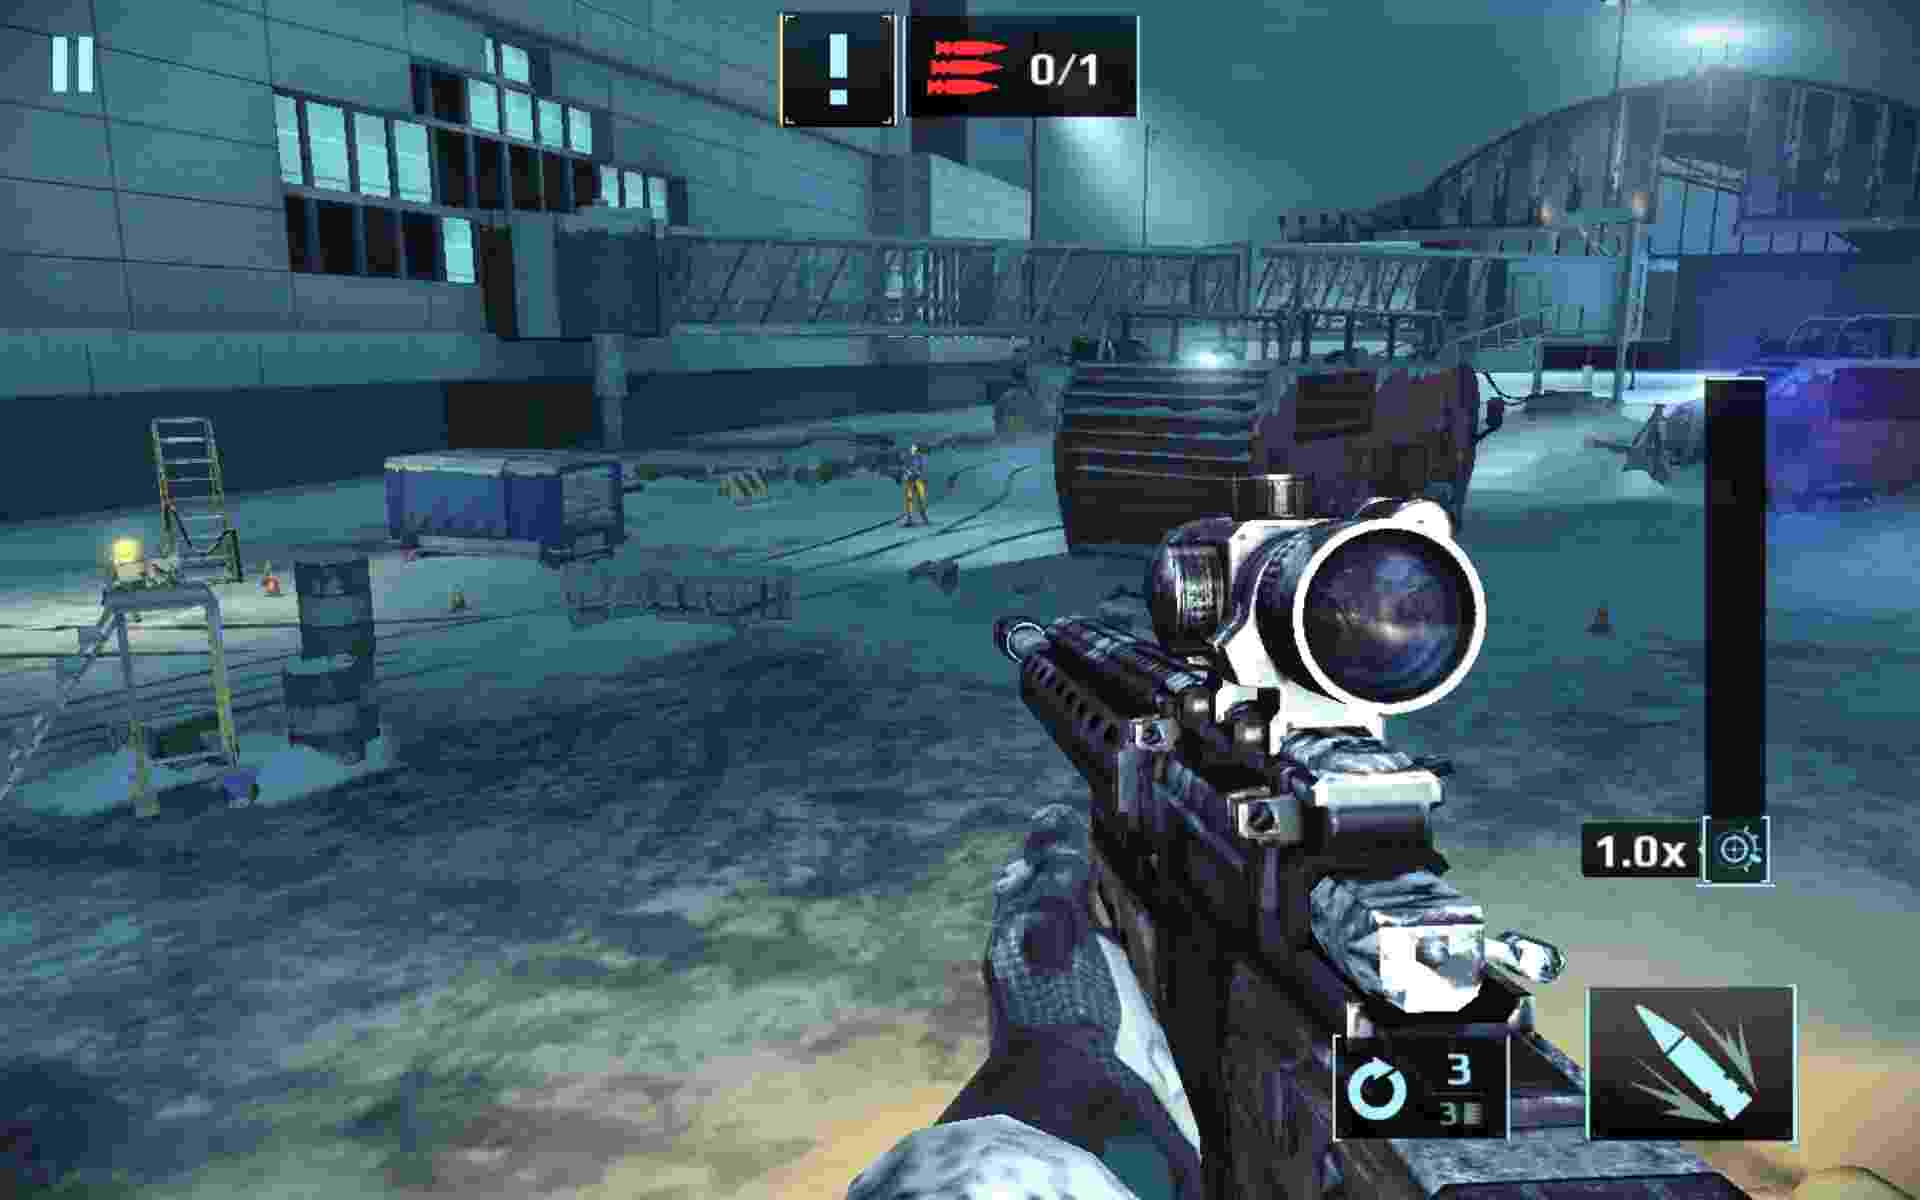 Best Sniper Shooting Games For Android Smartphones In 2018